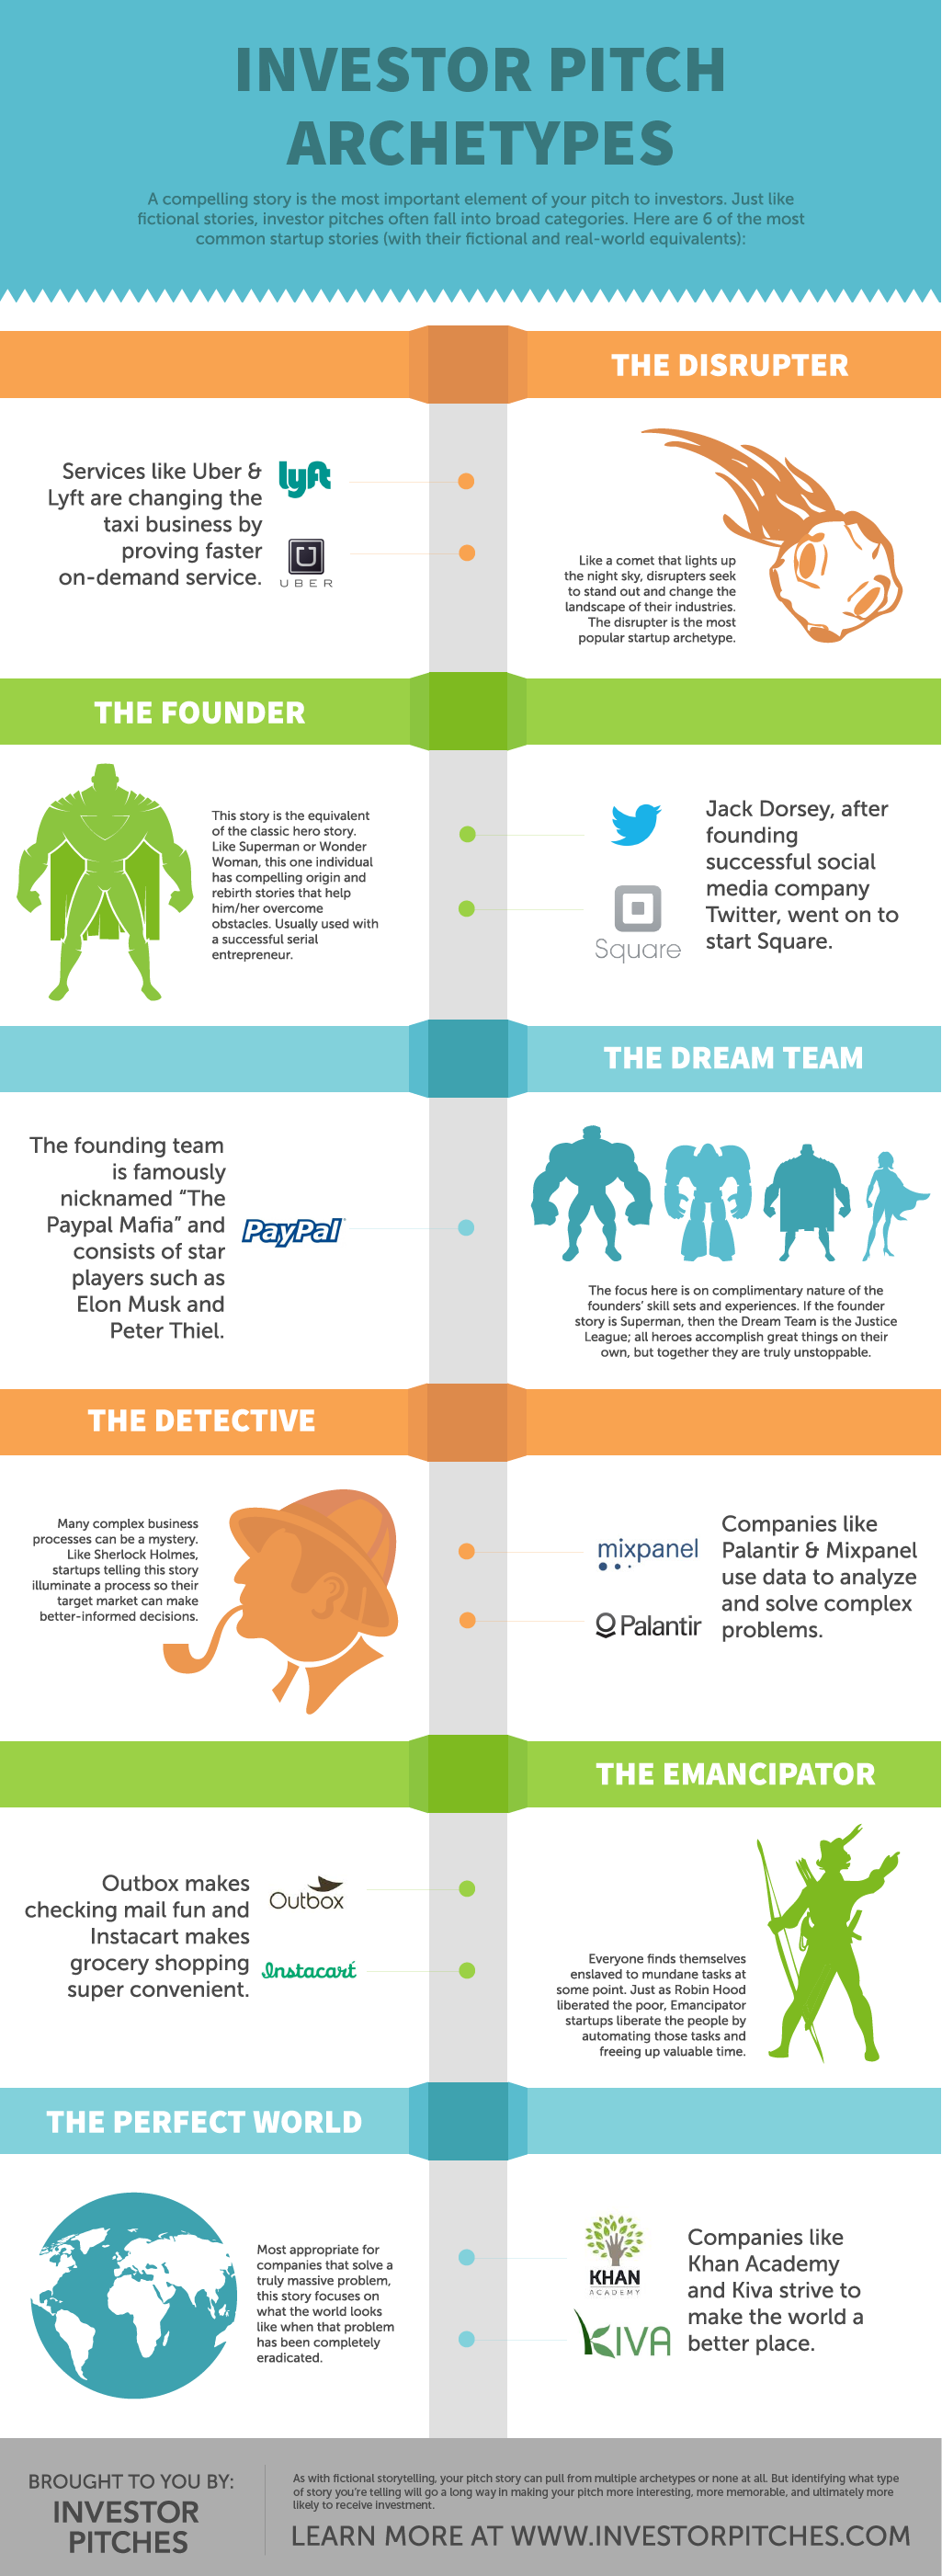 INFOGRAPHIC Investor Pitch Archetypes InvestorPitchescom - Angel investor pitch template